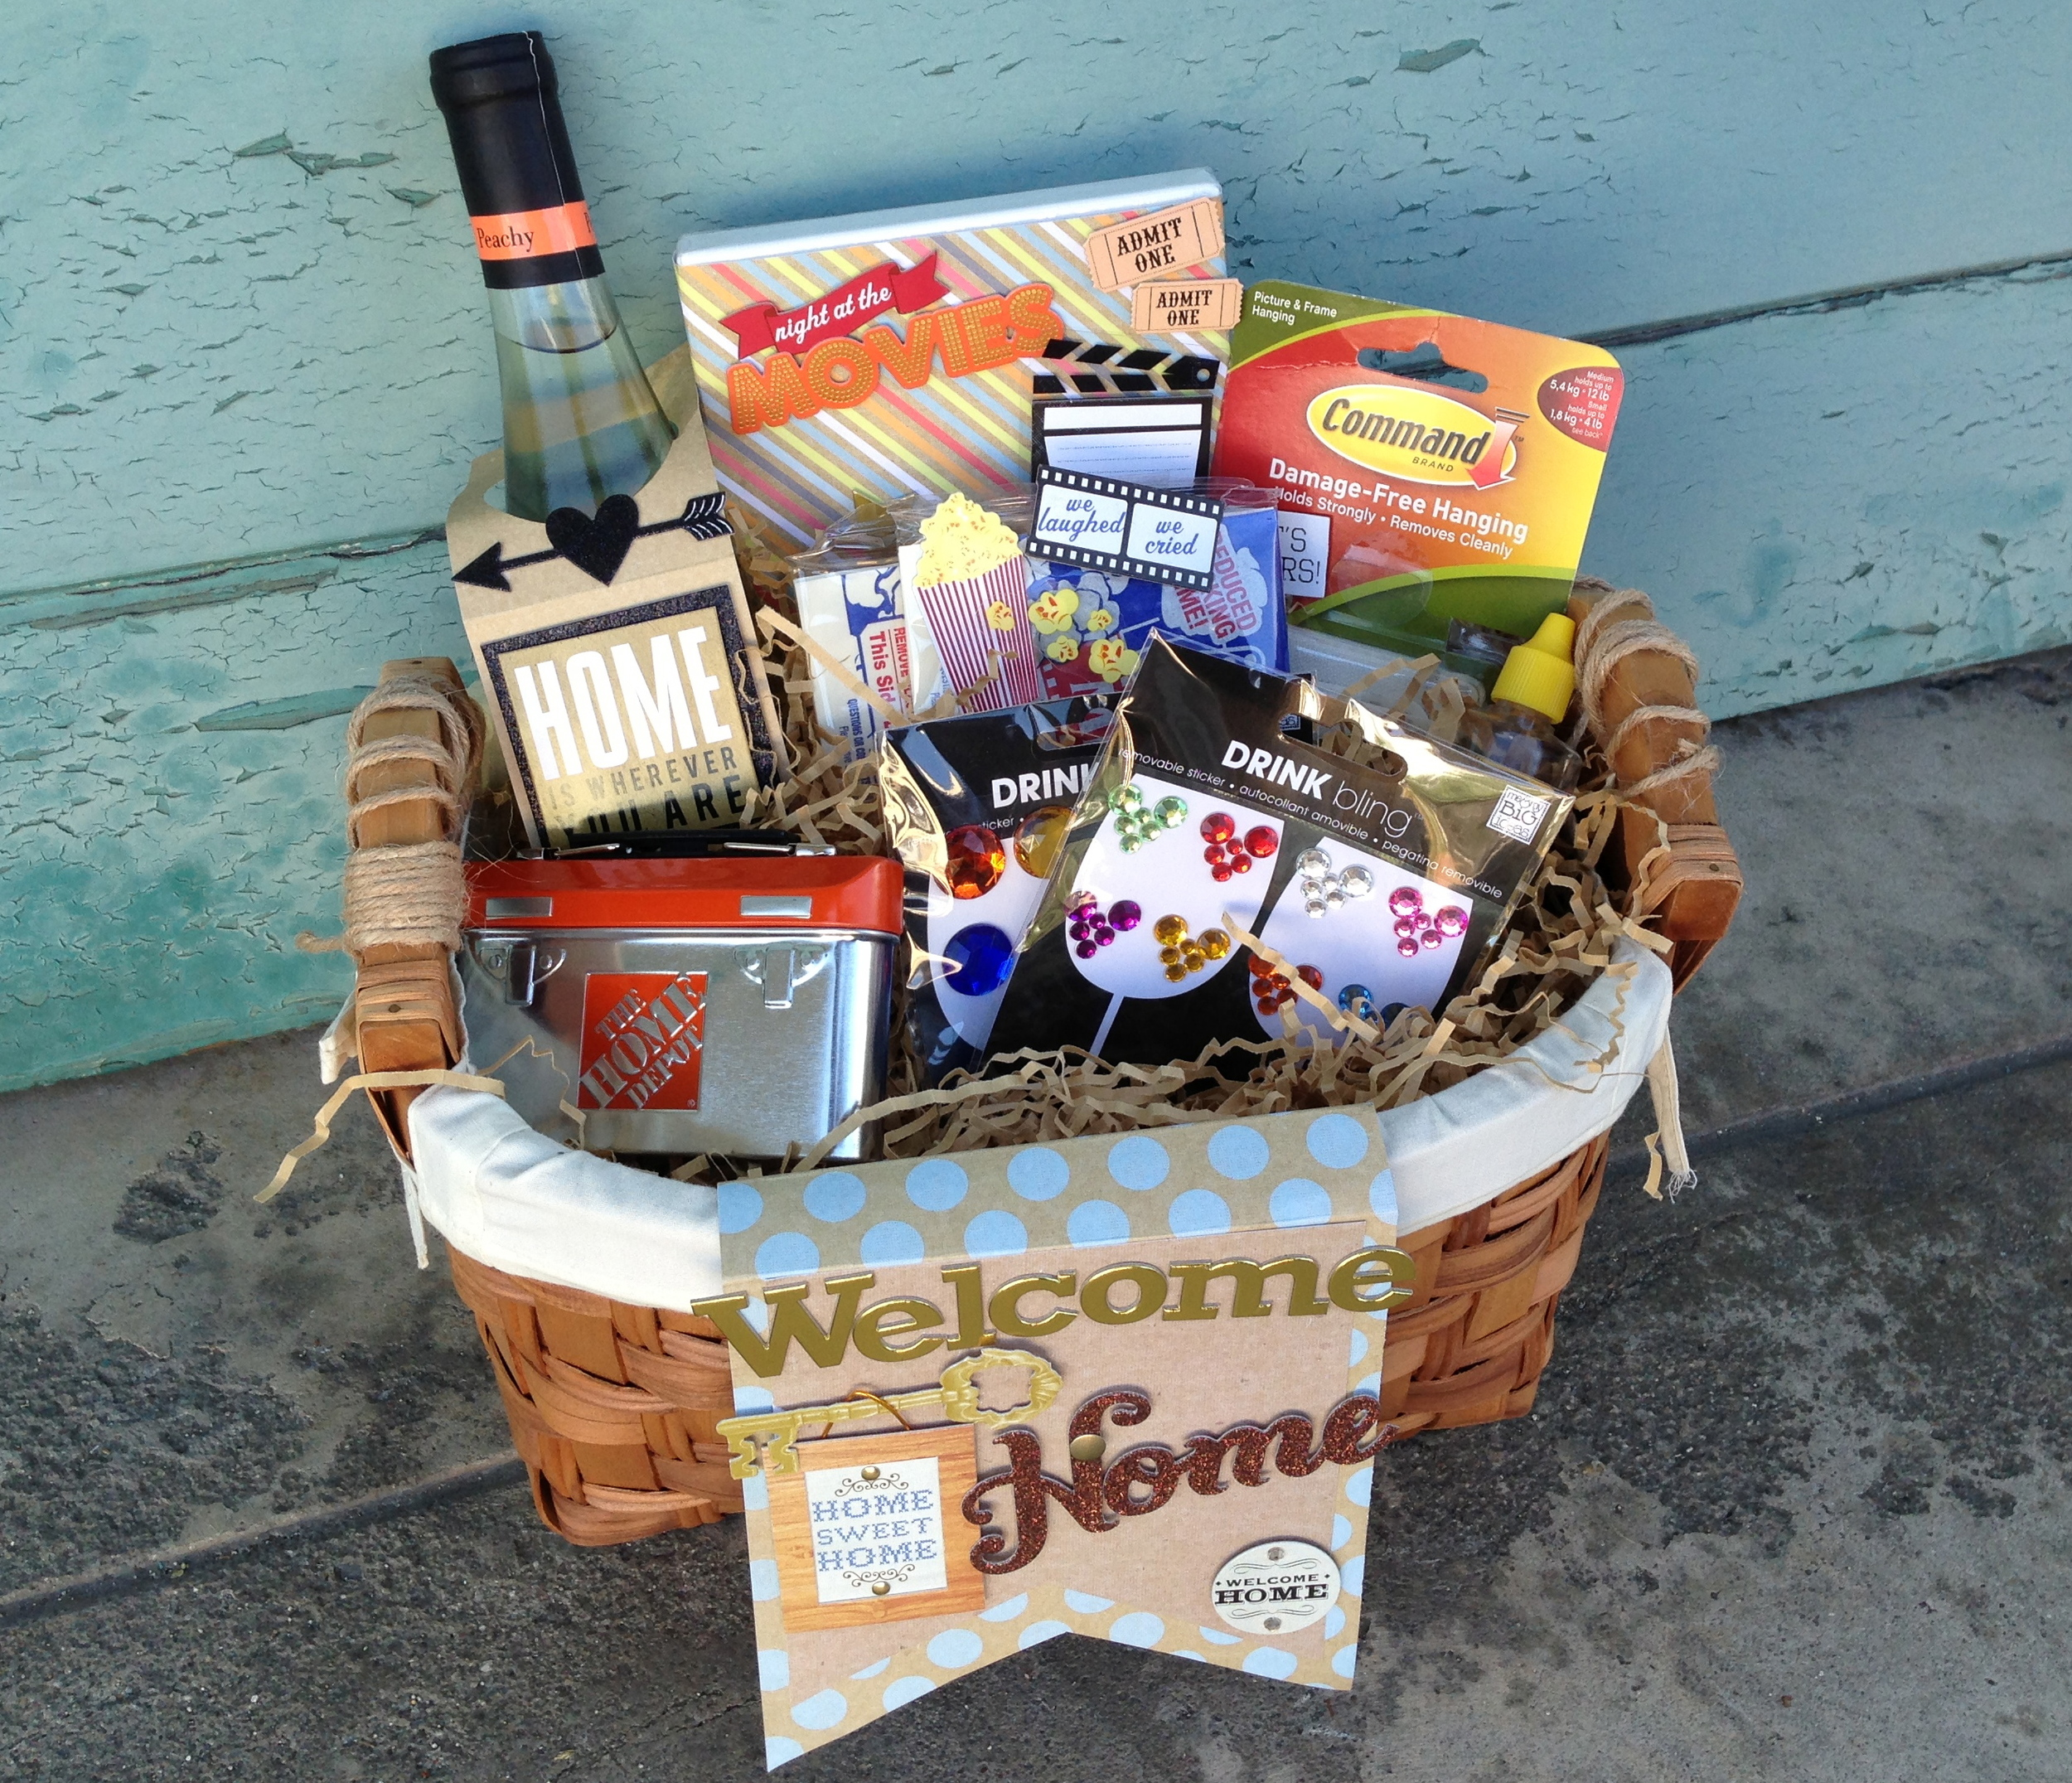 Housewarming gift basket on the mambi blog.  wine bottle cover, decorated wine bottle, popcorn, home depot gift card, drink bling.